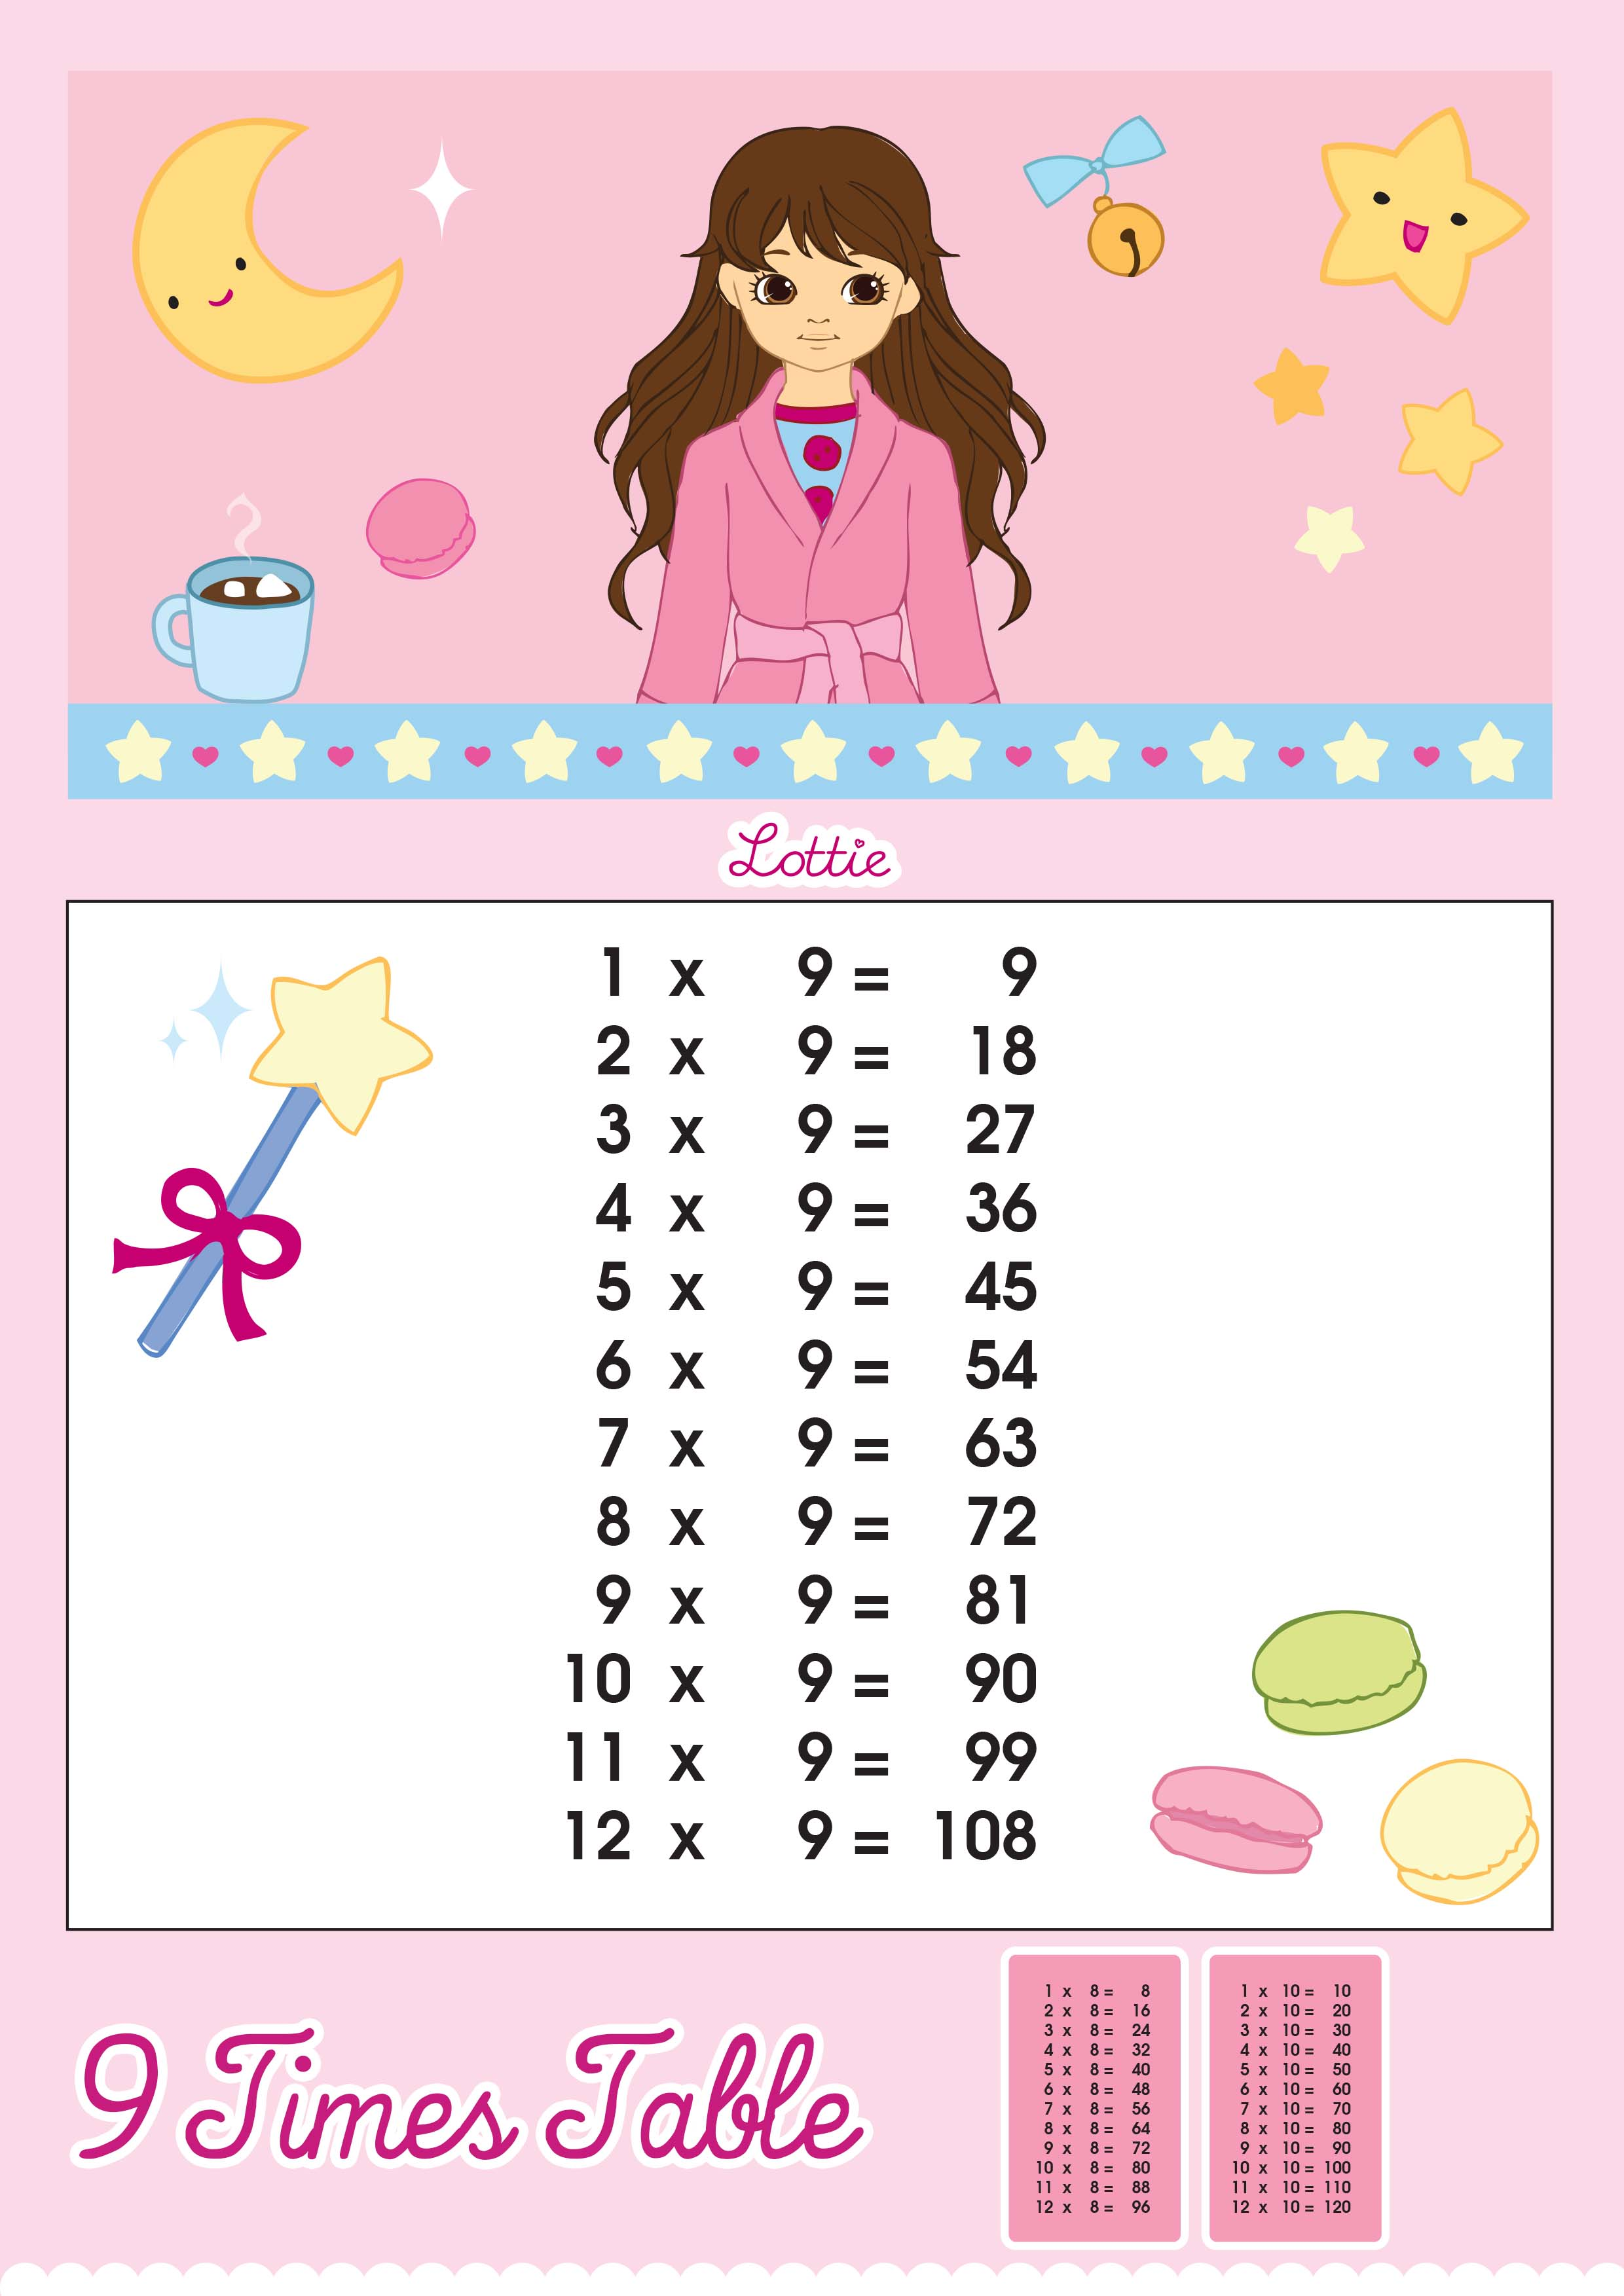 9 Times Table Printable Chart Lottie Dolls